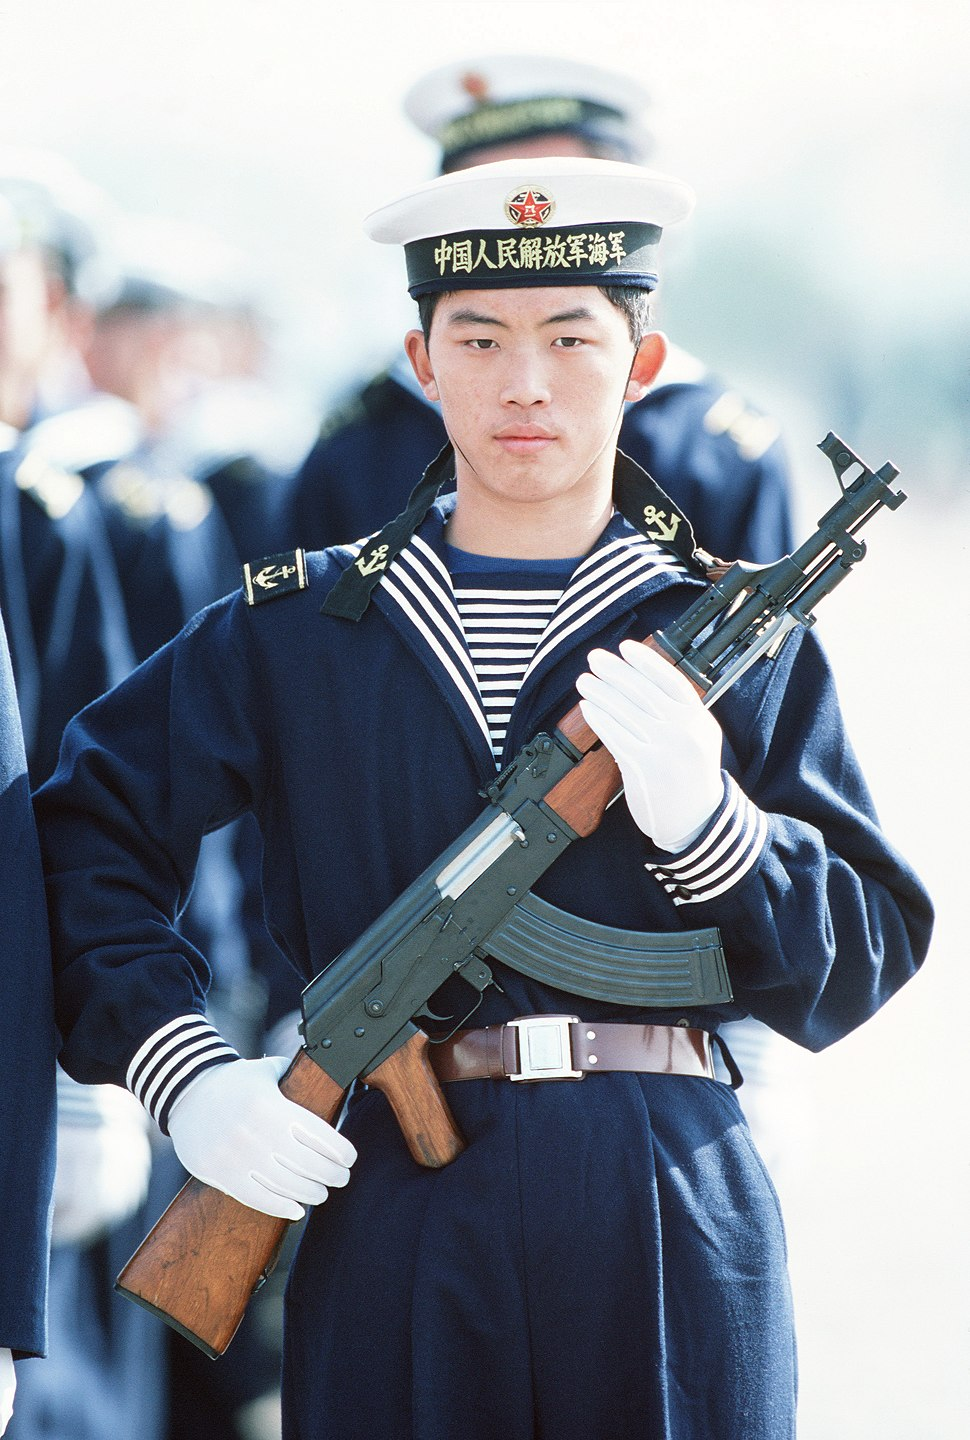 People%27s Liberation Army Navy sailor with type 56 assault rifle.jpeg